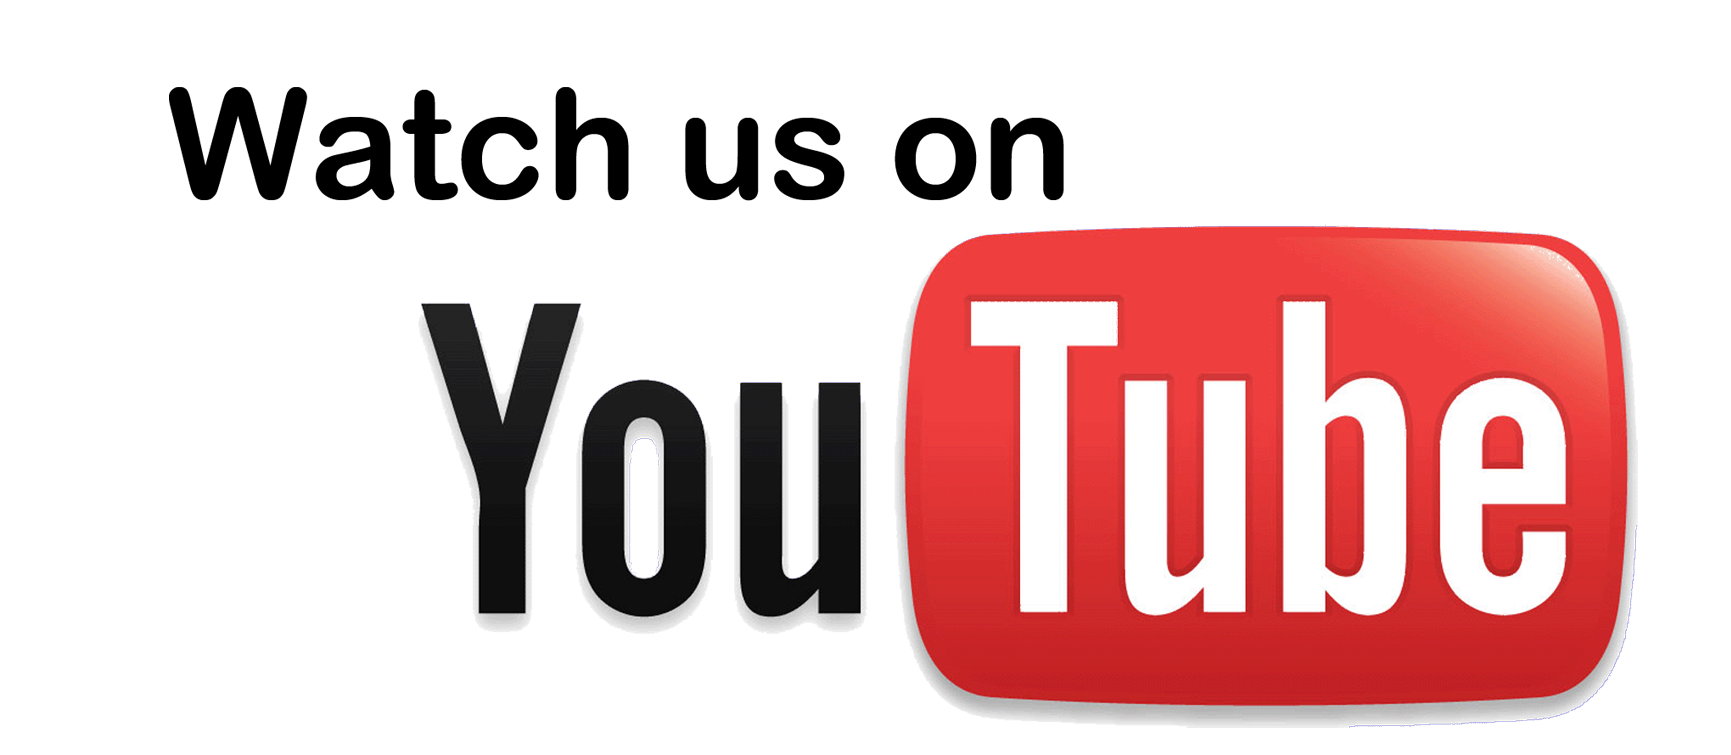 watch-us-on-youtube-logo-png